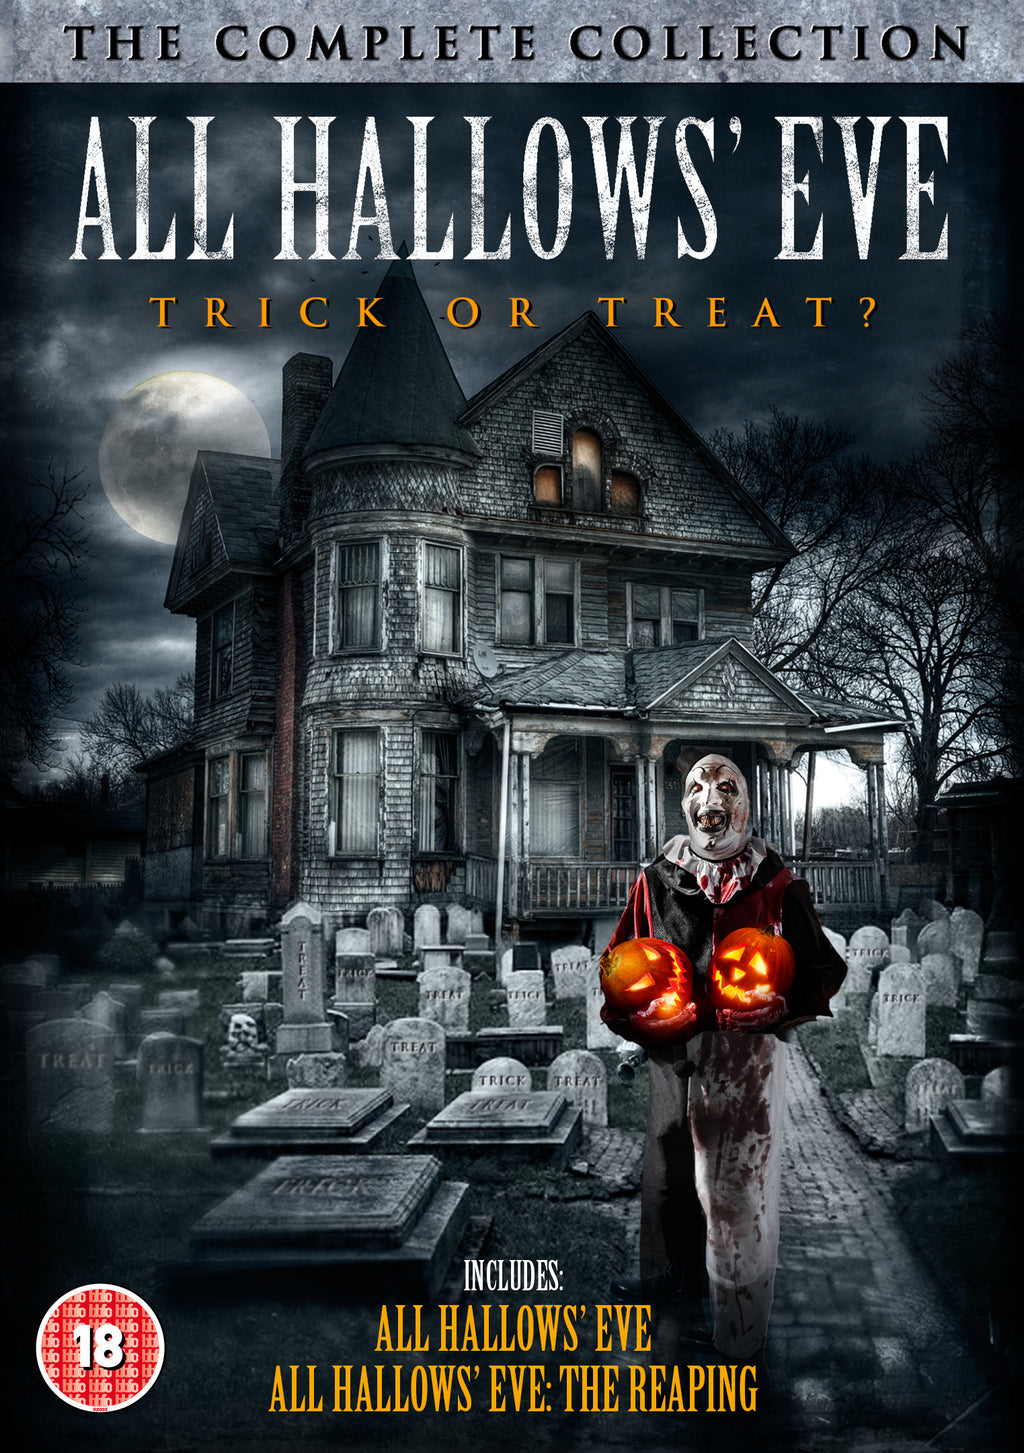 All Hallow's Eve & All Hallow's Eve: The Reaping (DVD)